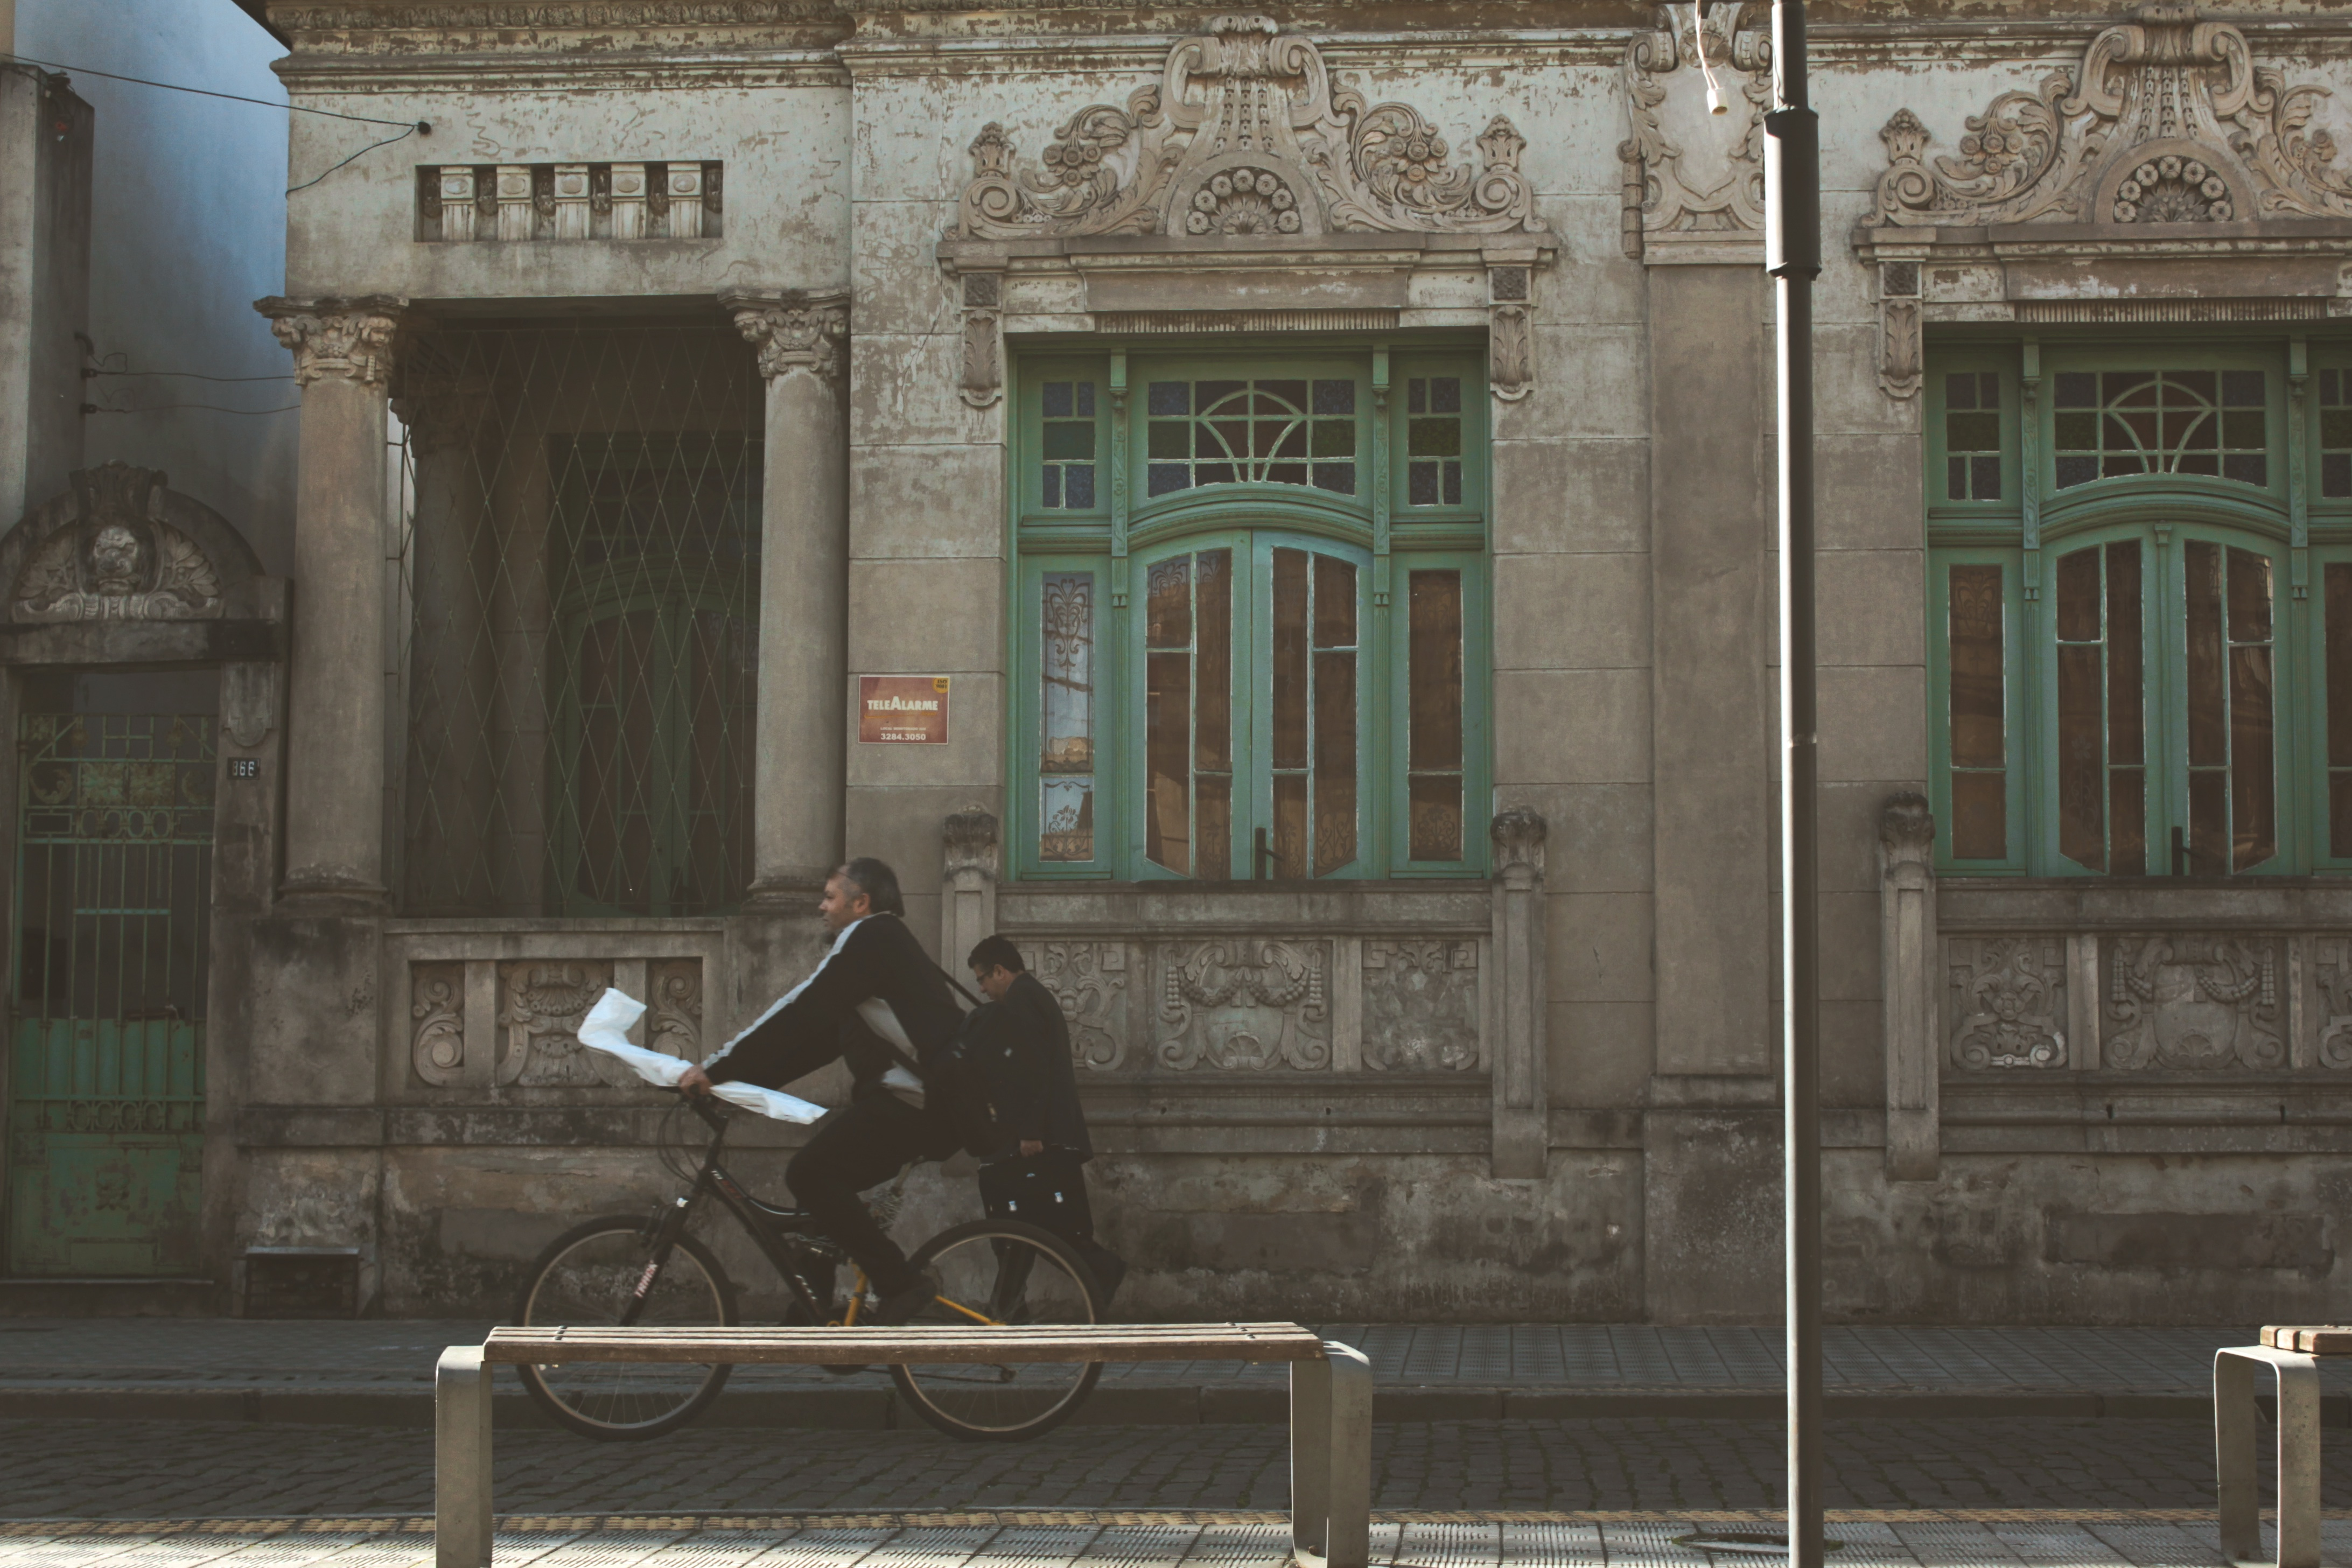 Old Architecture, Architecture, Building, Cycle, Old, HQ Photo